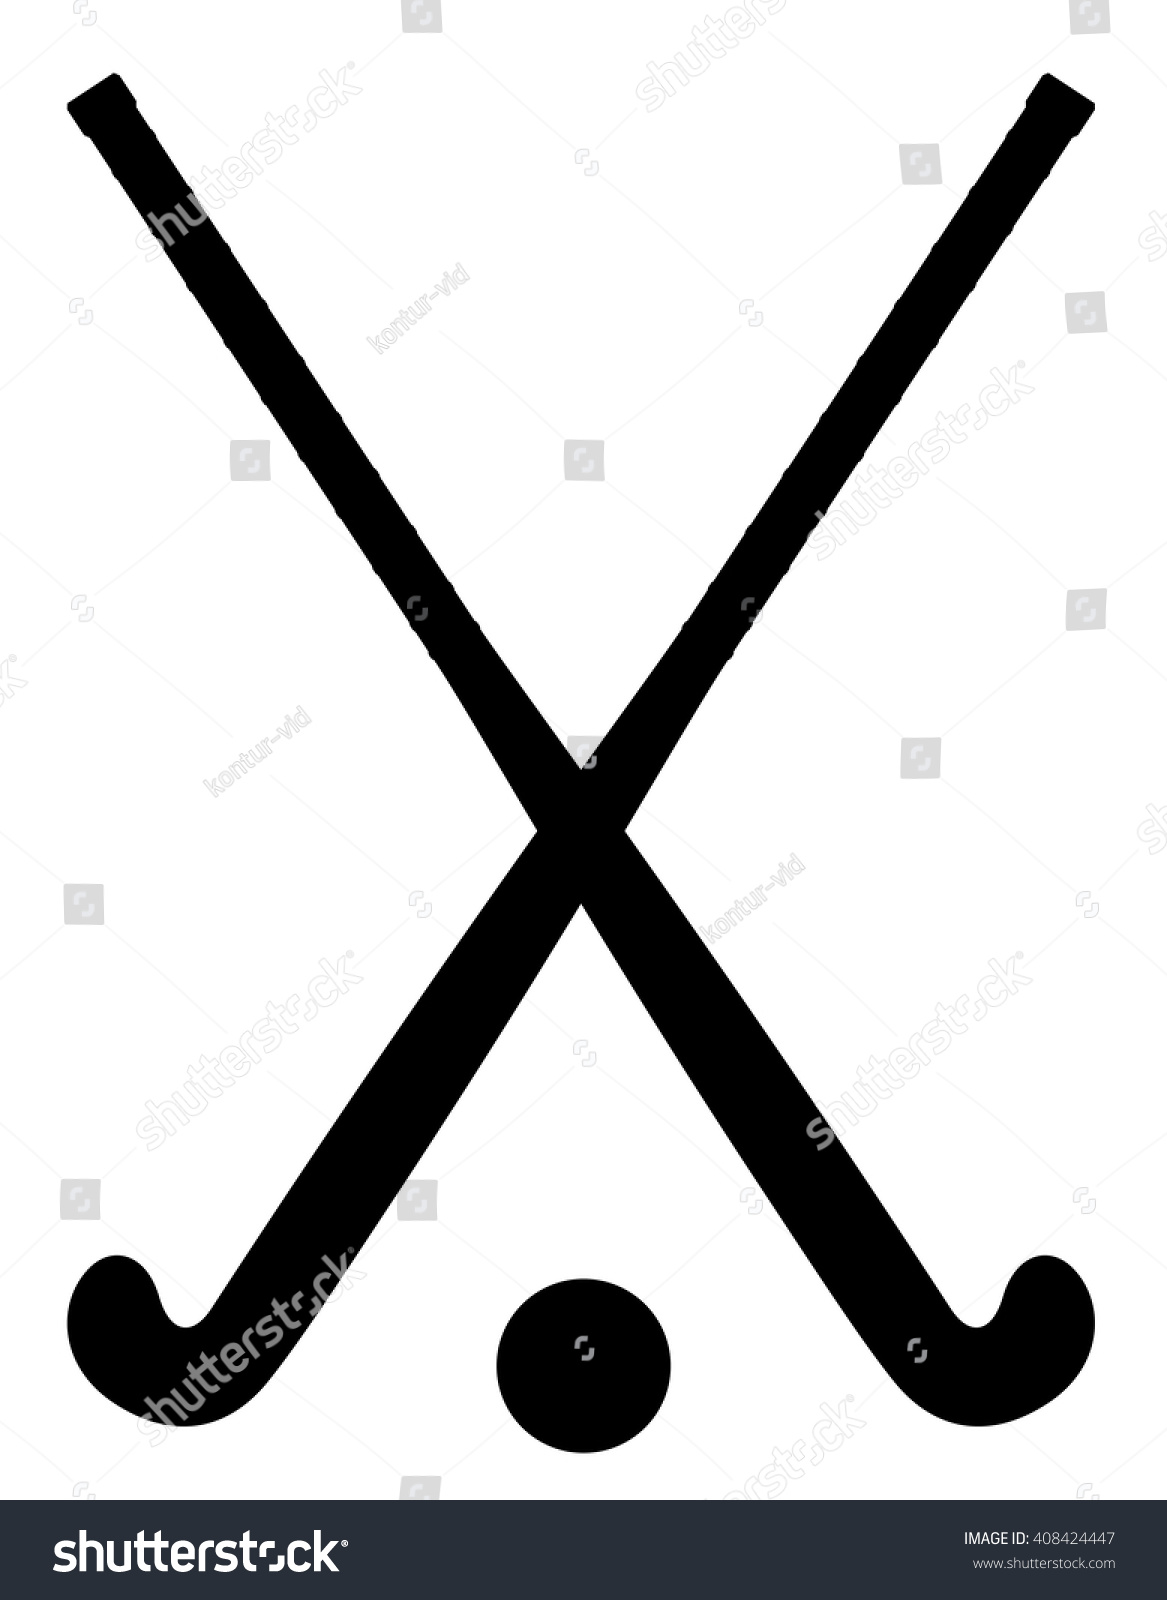 Field hockey equipment black outline silhouette stock vector field hockey equipment black outline silhouette vector illustration isolated on white background biocorpaavc Image collections